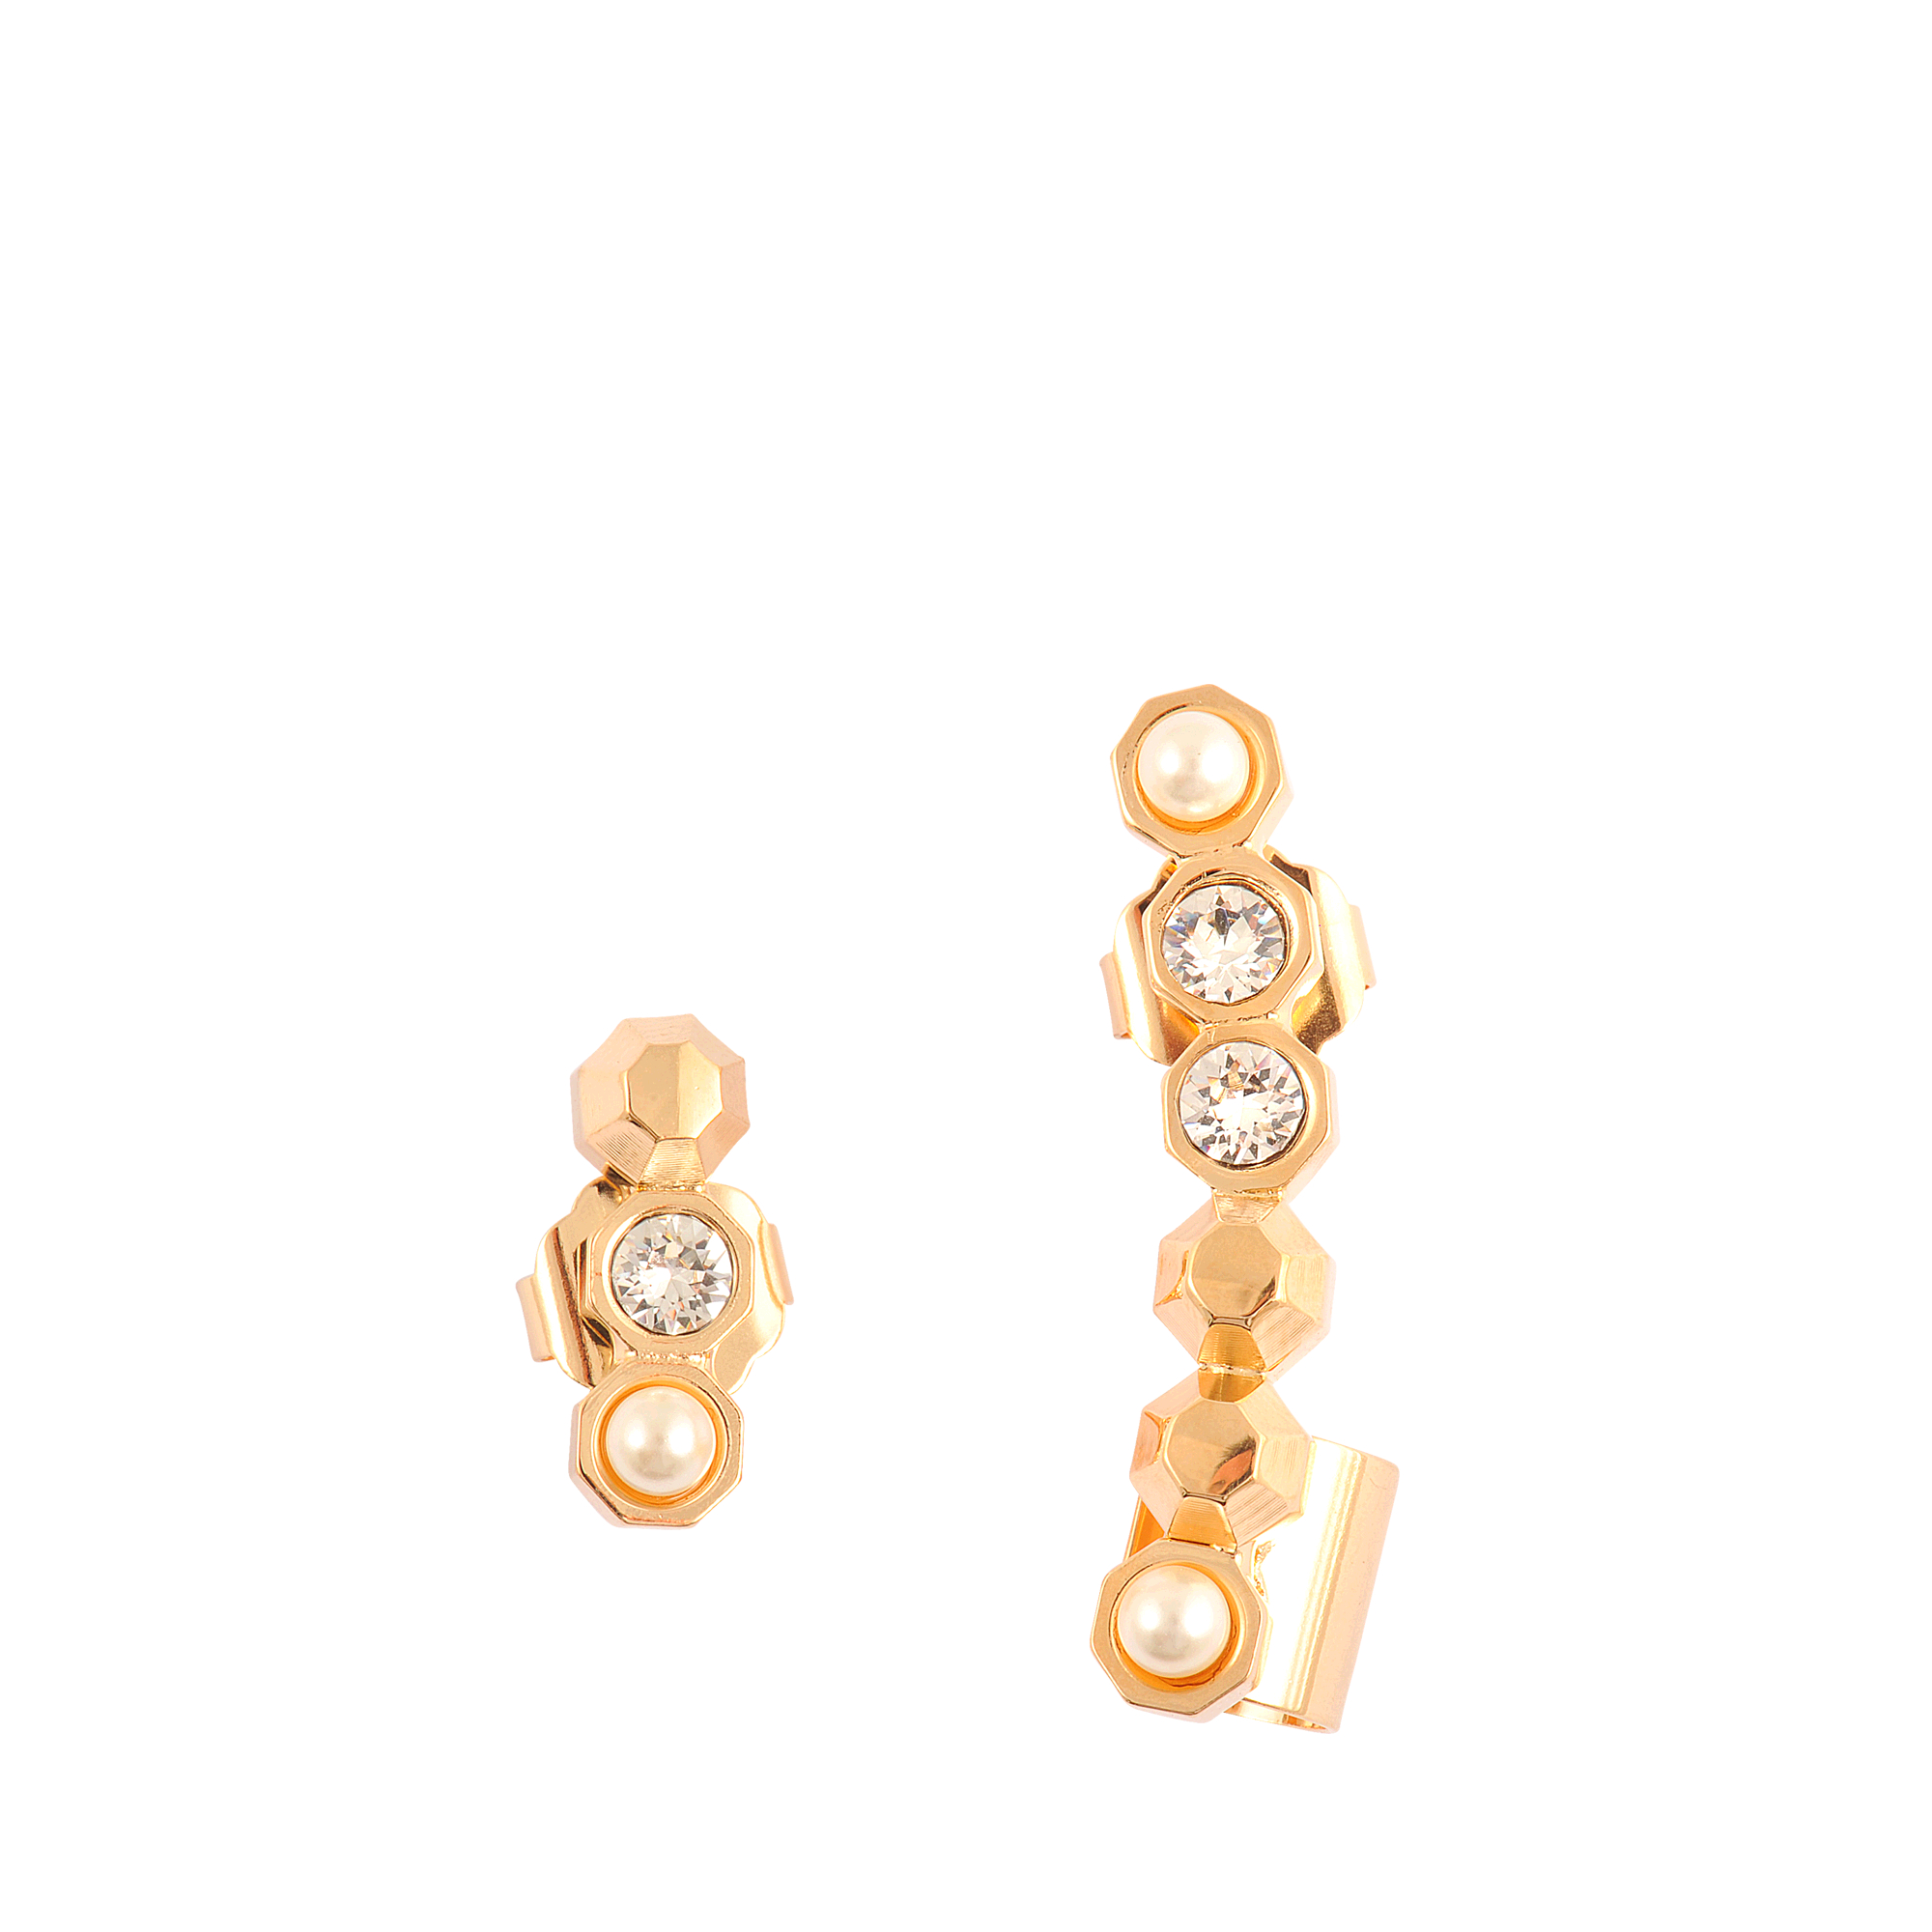 asymmetric rosebud malik earring earrings jewellery product rosegold